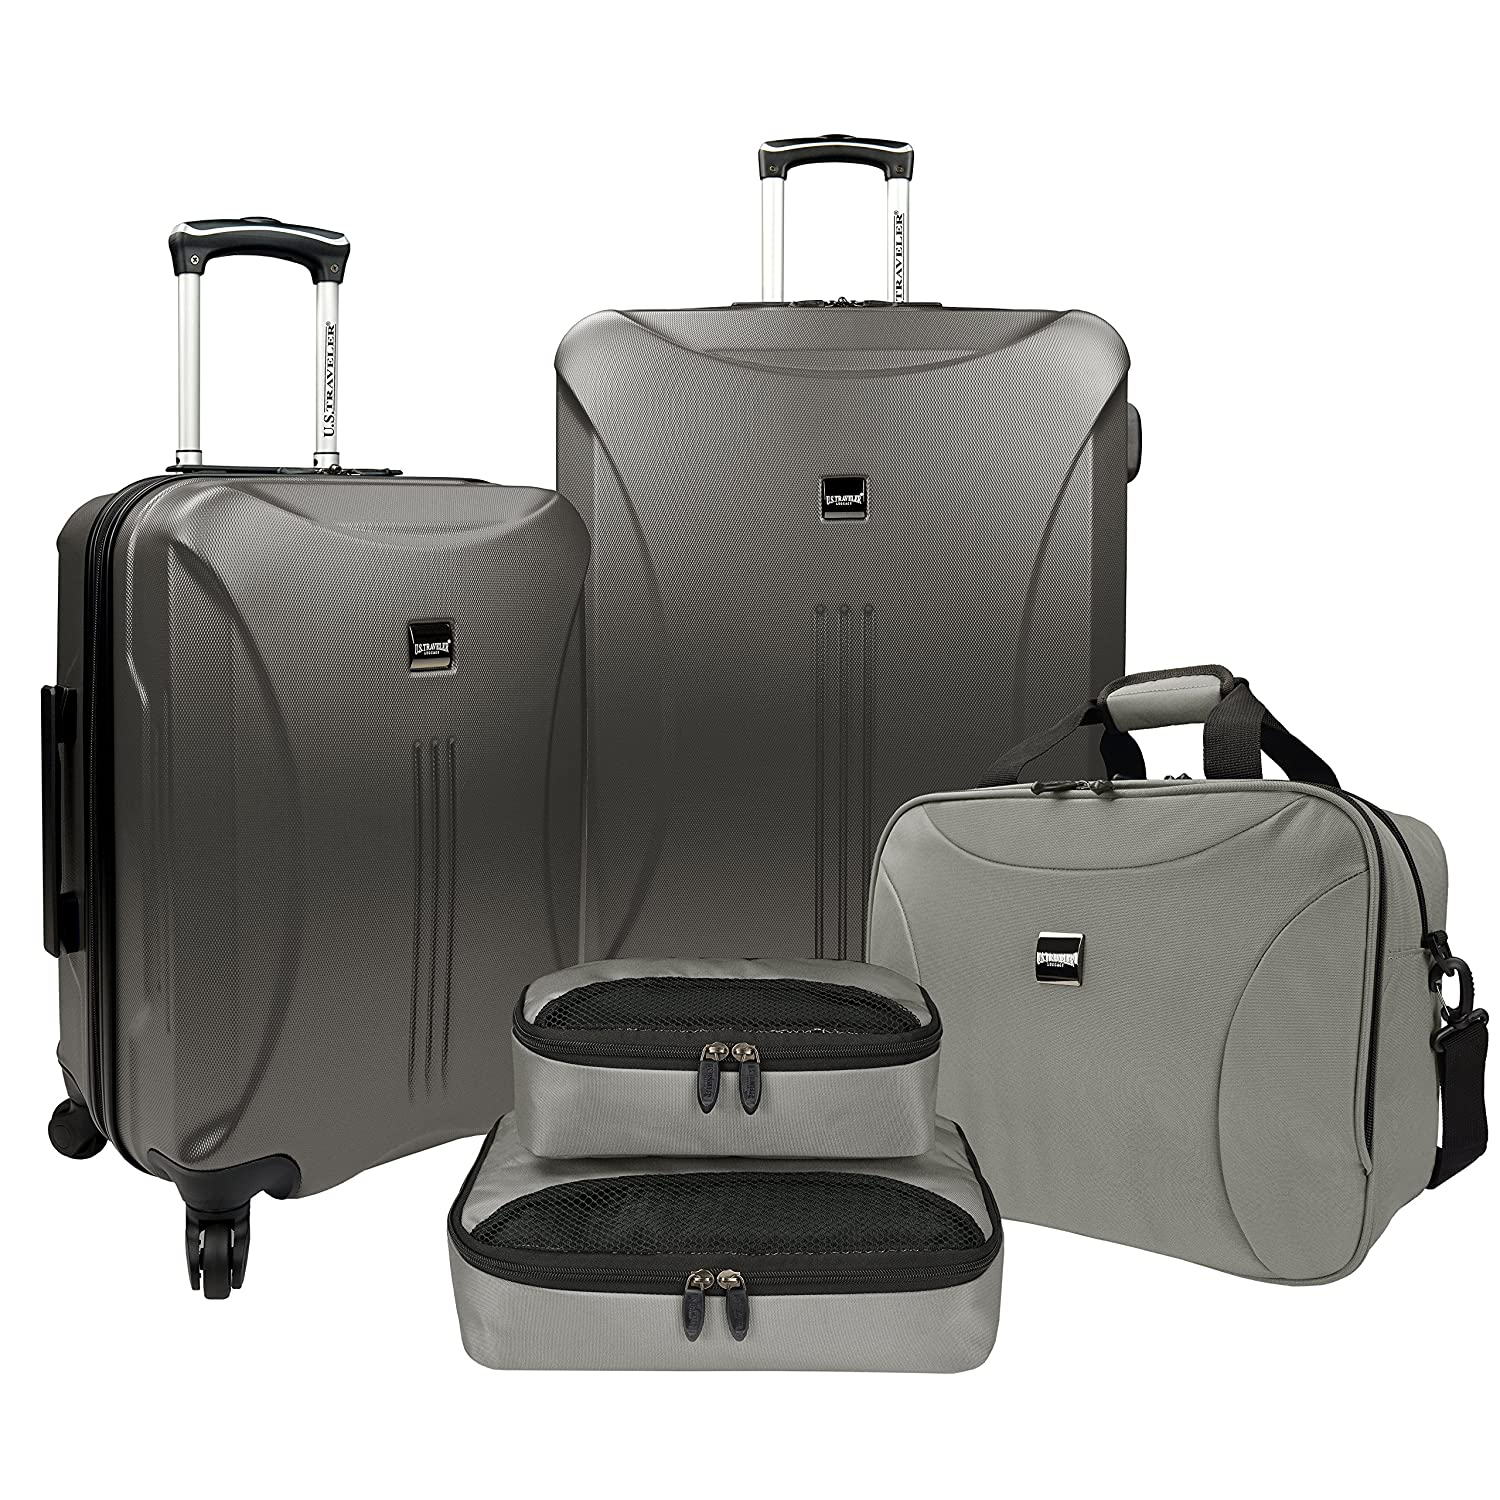 25f568783825 US Traveler Skyscraper Hardside Spinner Tote & Packing 5-Piece Cube Set -  Iron Grey